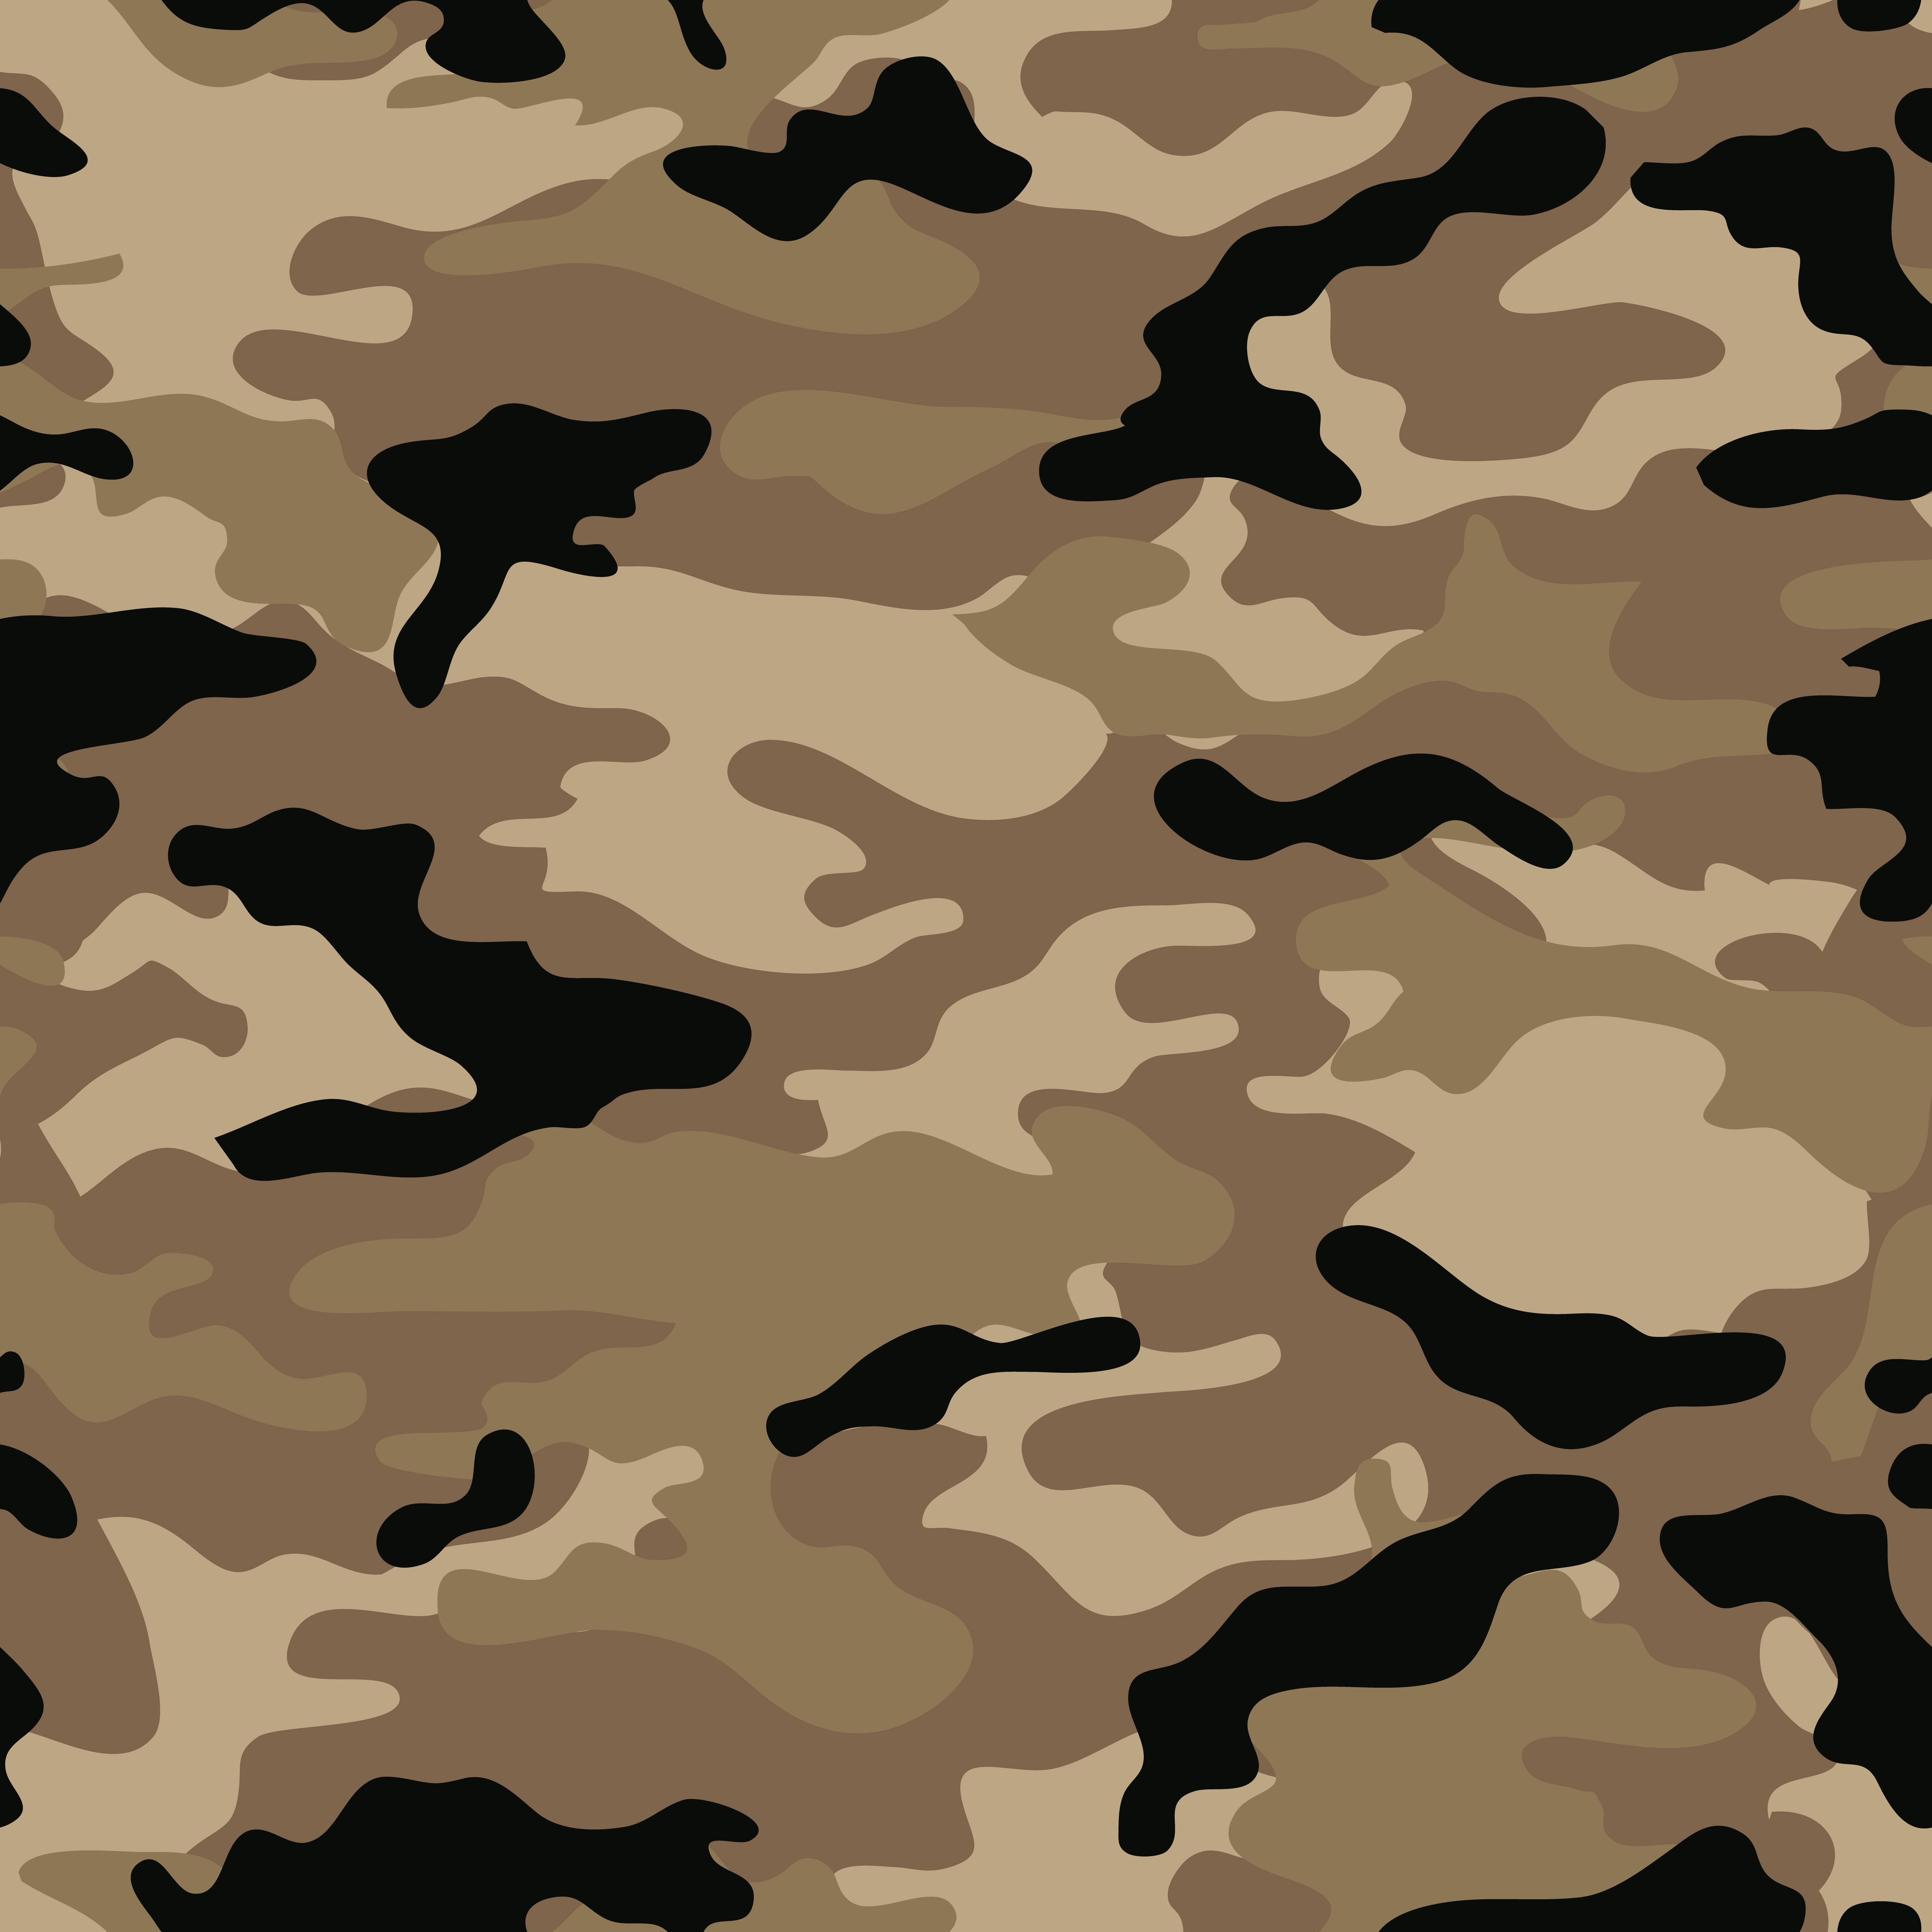 Desert Camouflage Background Viewing Gallery Camo Wallpaper Camo Patterns Camouflage Patterns